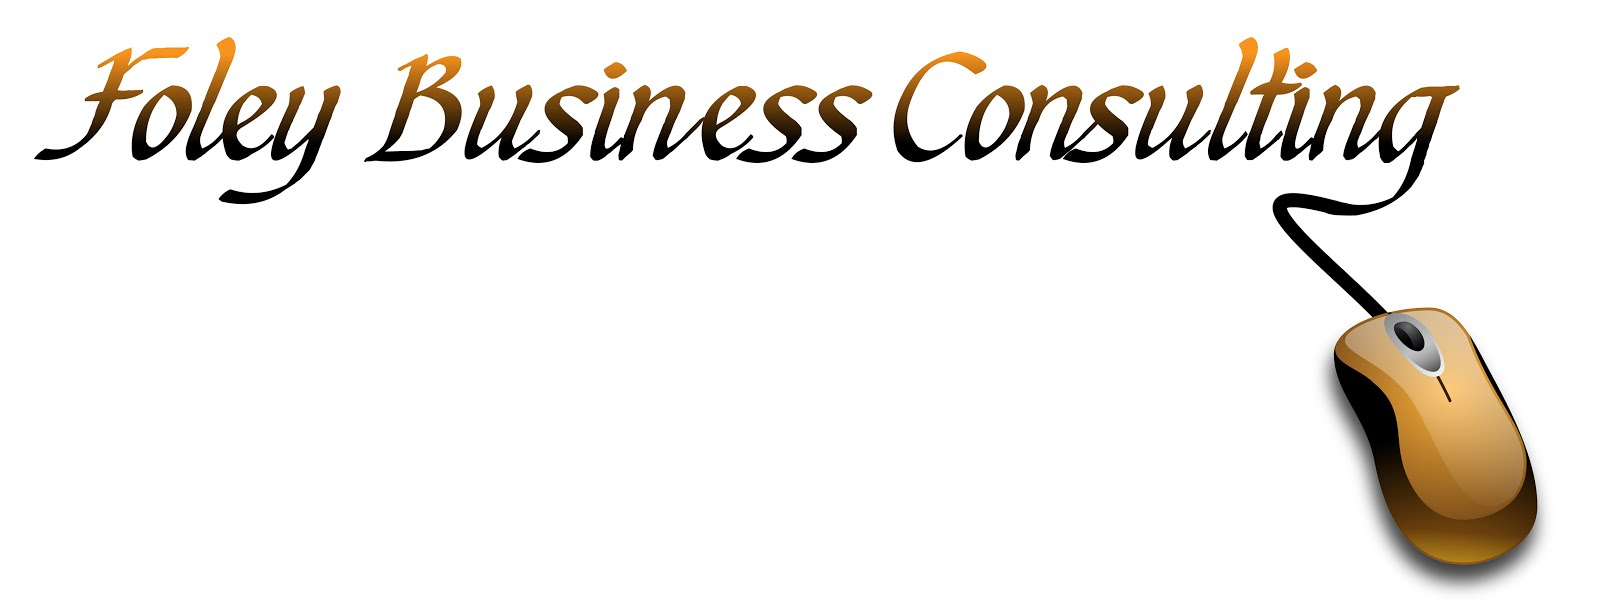 FOLEY BUSINESS CONSULTING